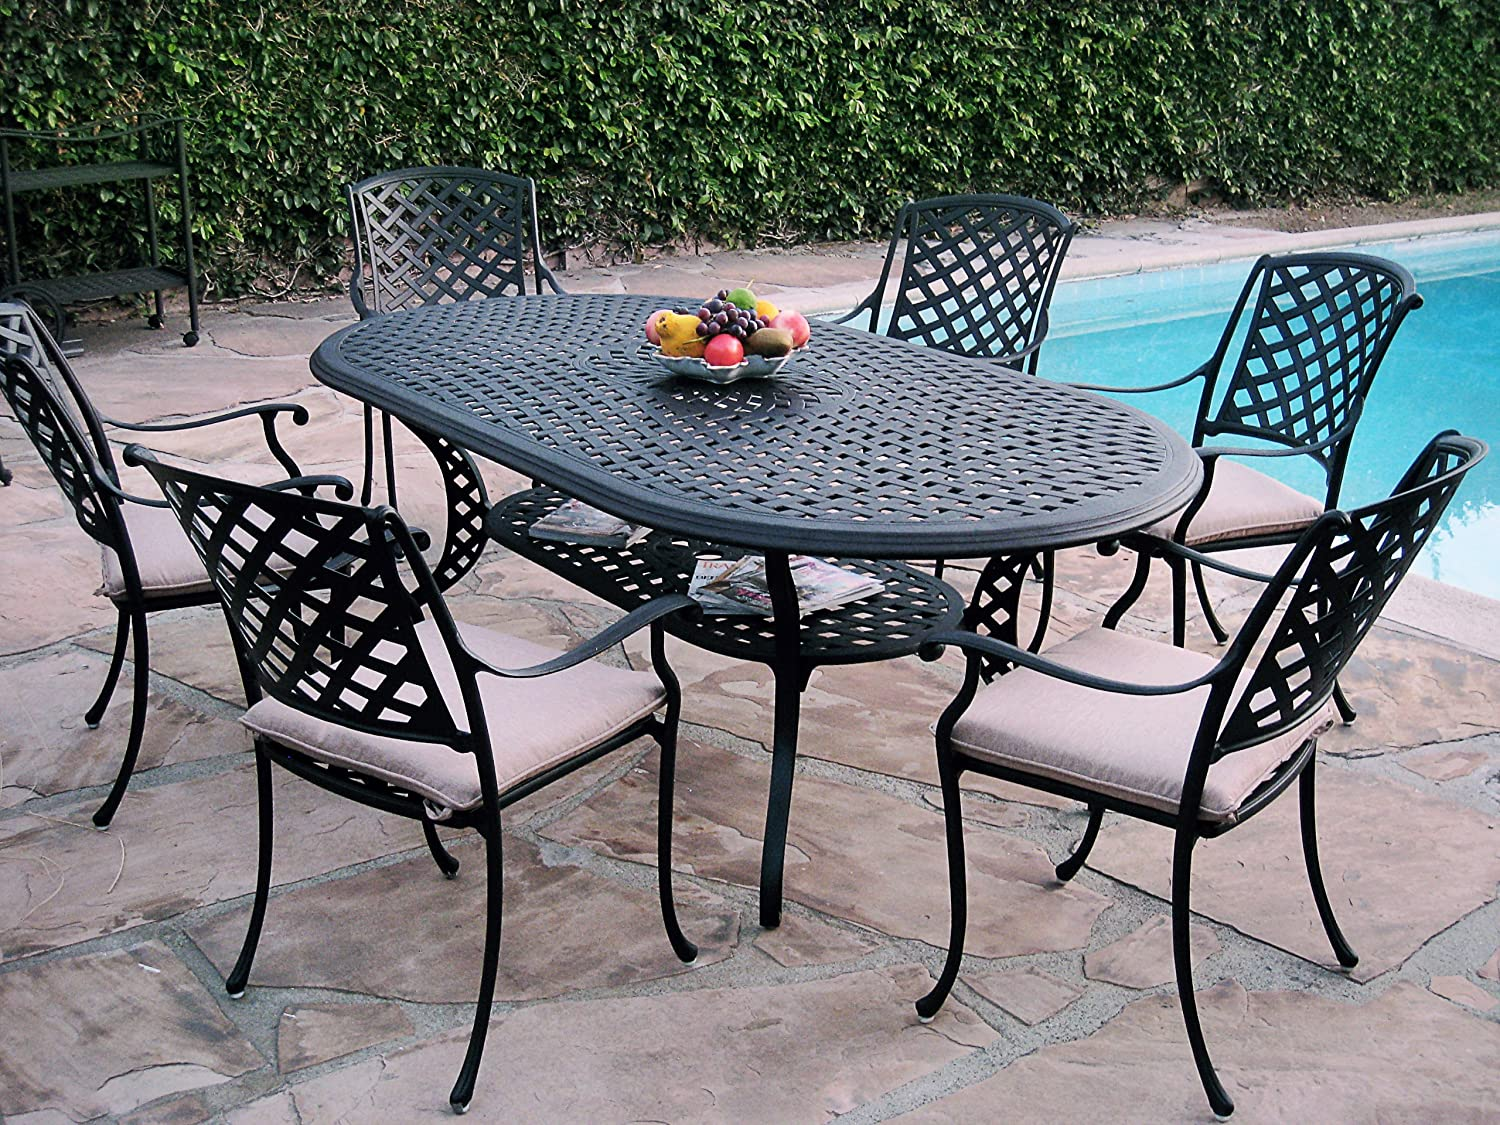 Outdoor Chair Set 7 Piece Outdoor Patio Furniture Cast Aluminum Dining Set